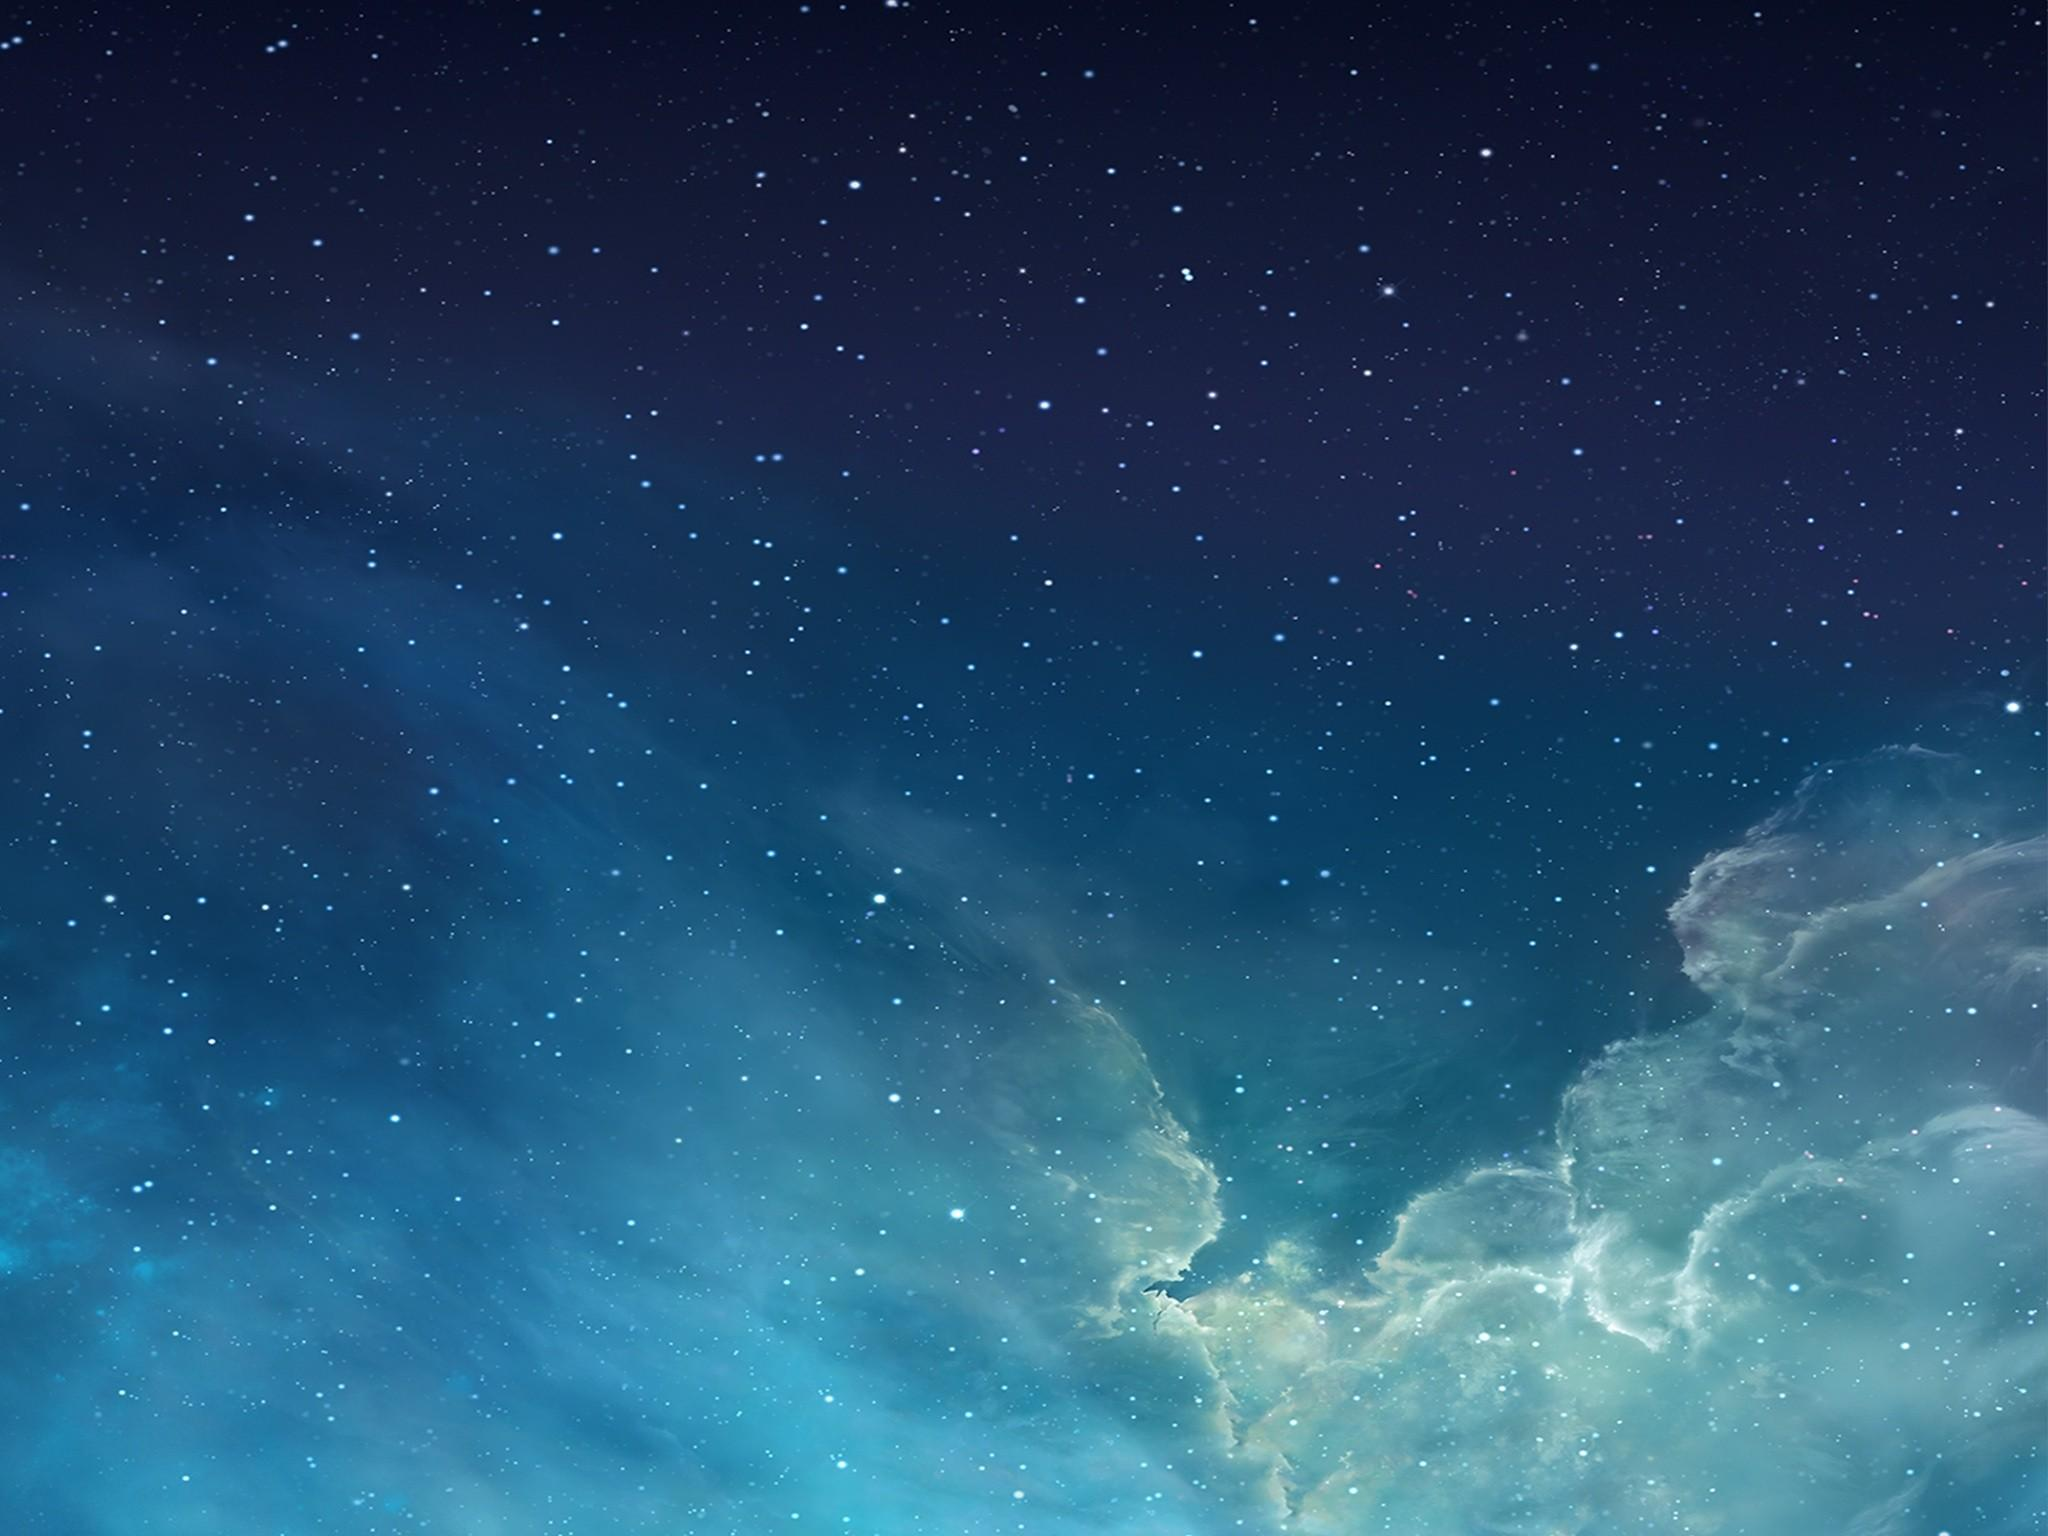 Galaxy Wallpapers For Ipad Air Download Amazing Artwork Backgrounds